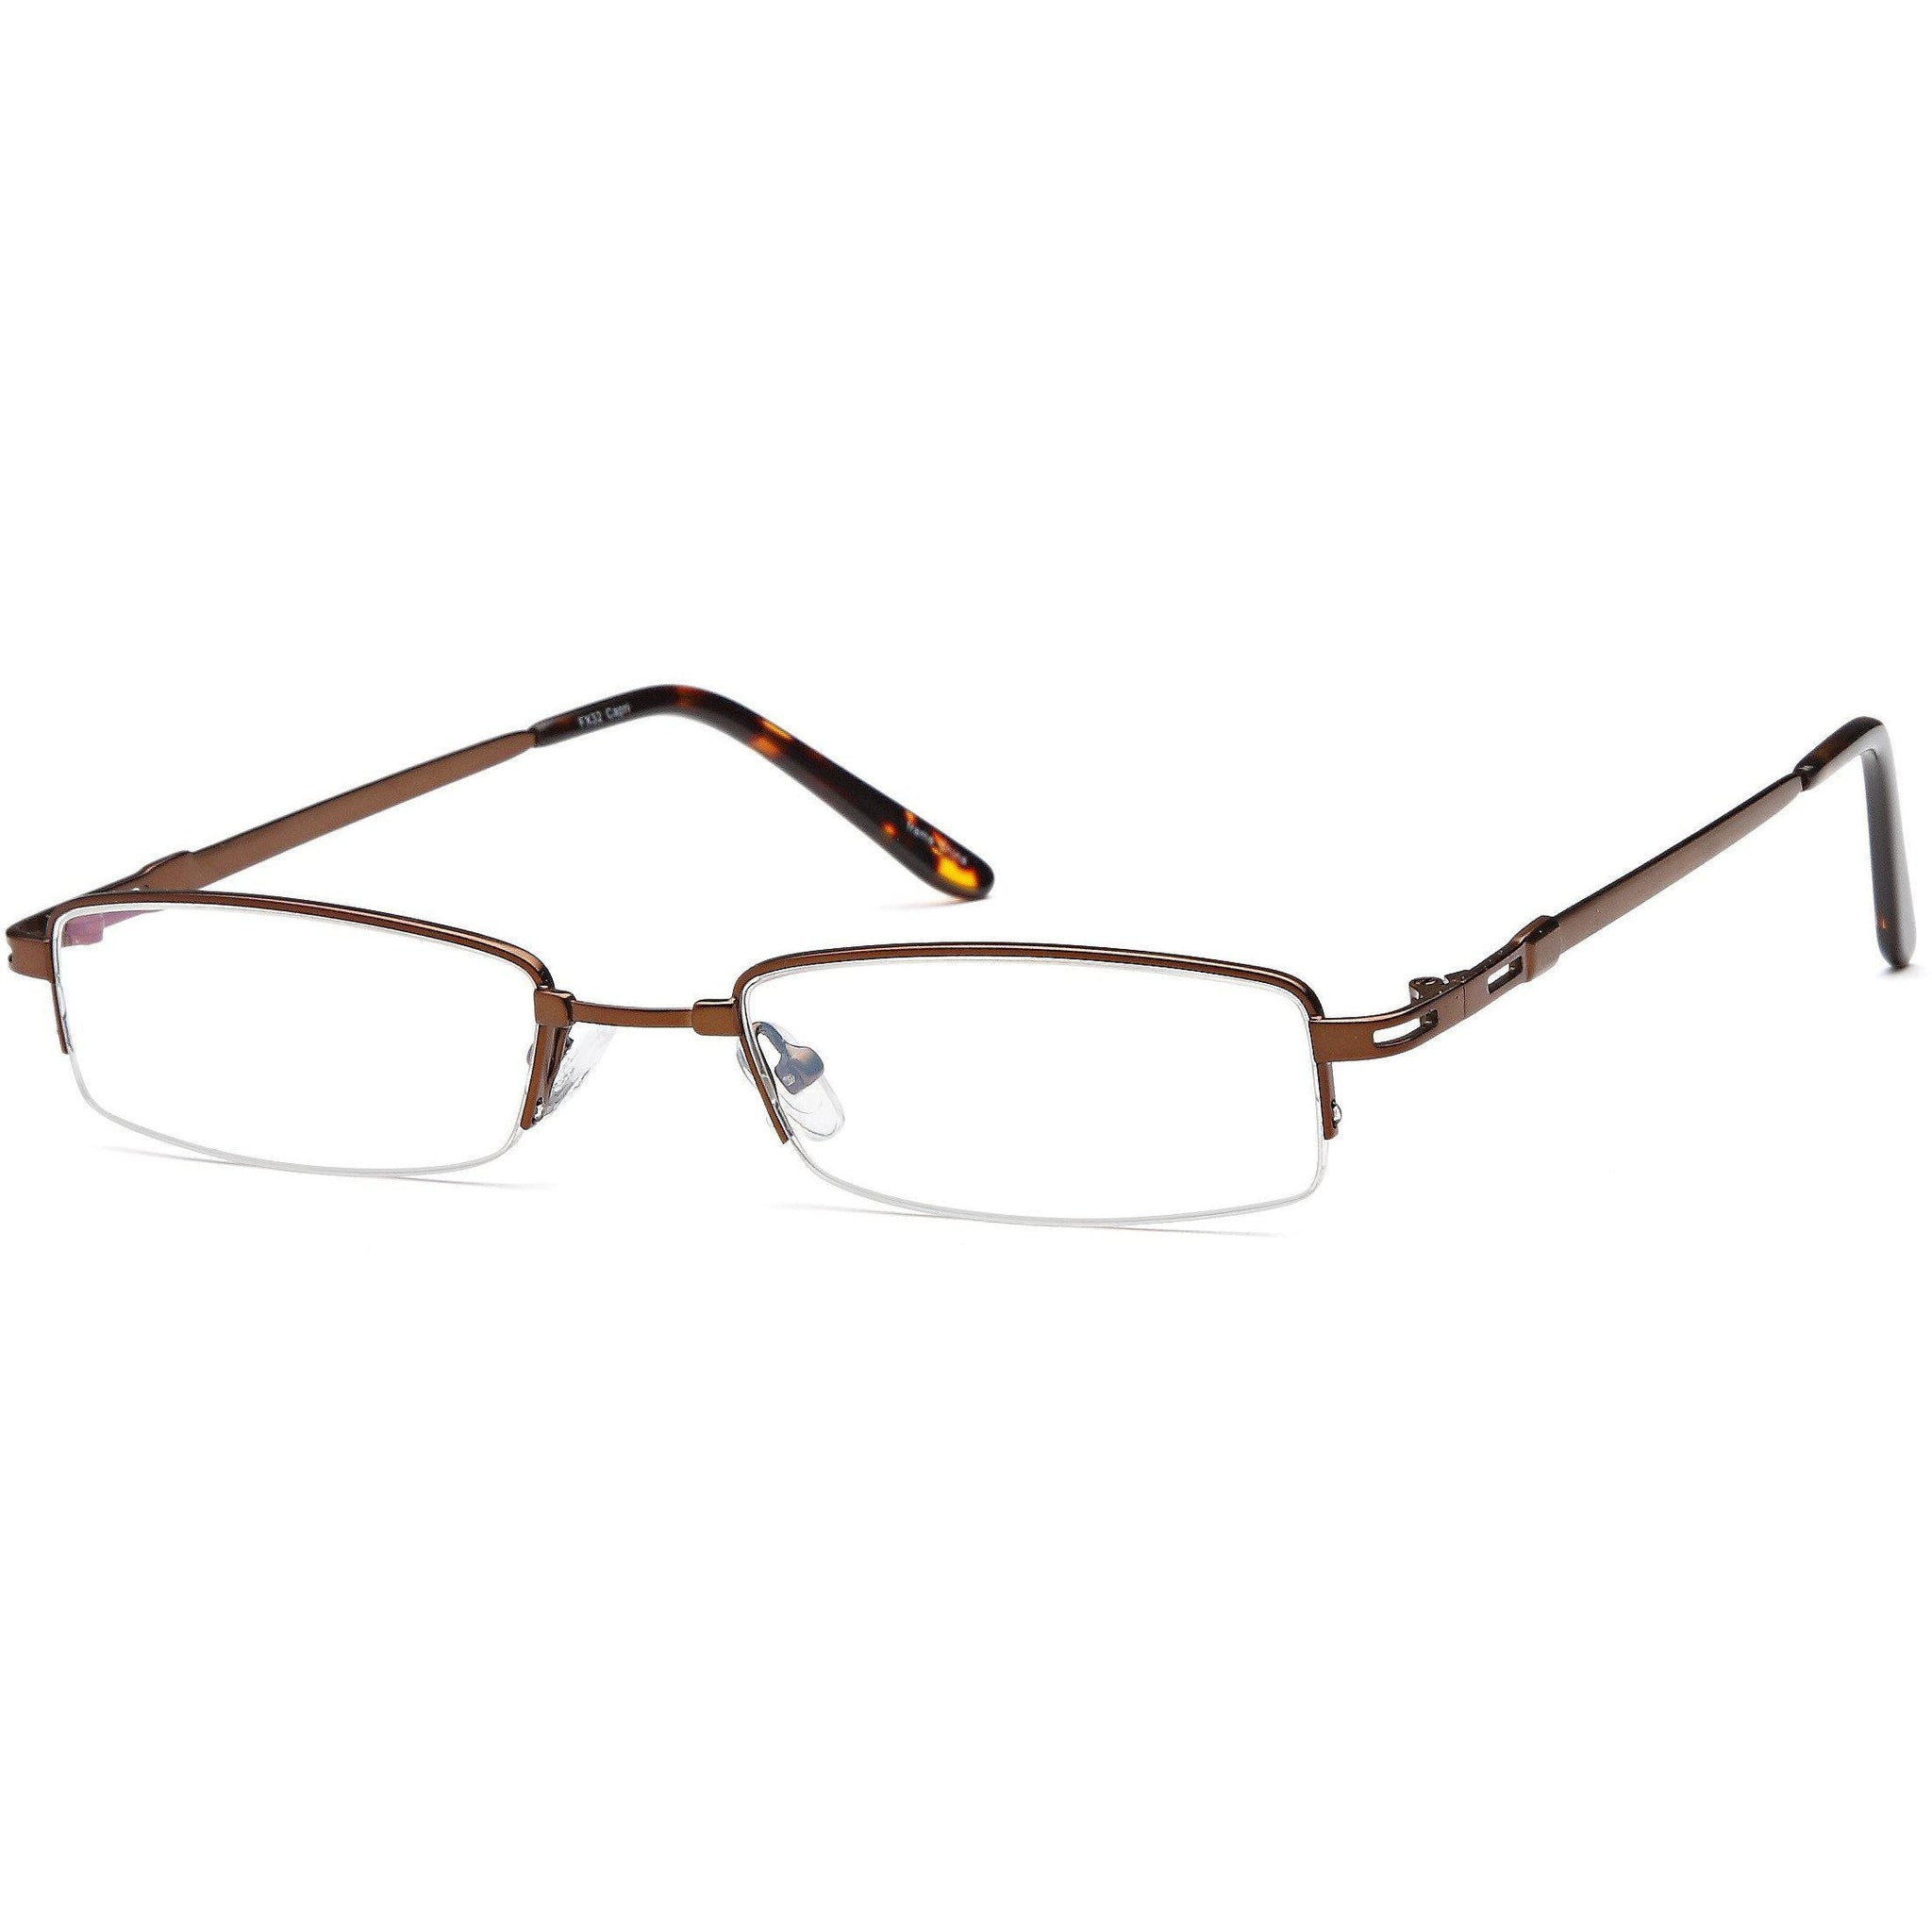 Titanium Prescription Glasses FX 32 Eyeglasses Frame